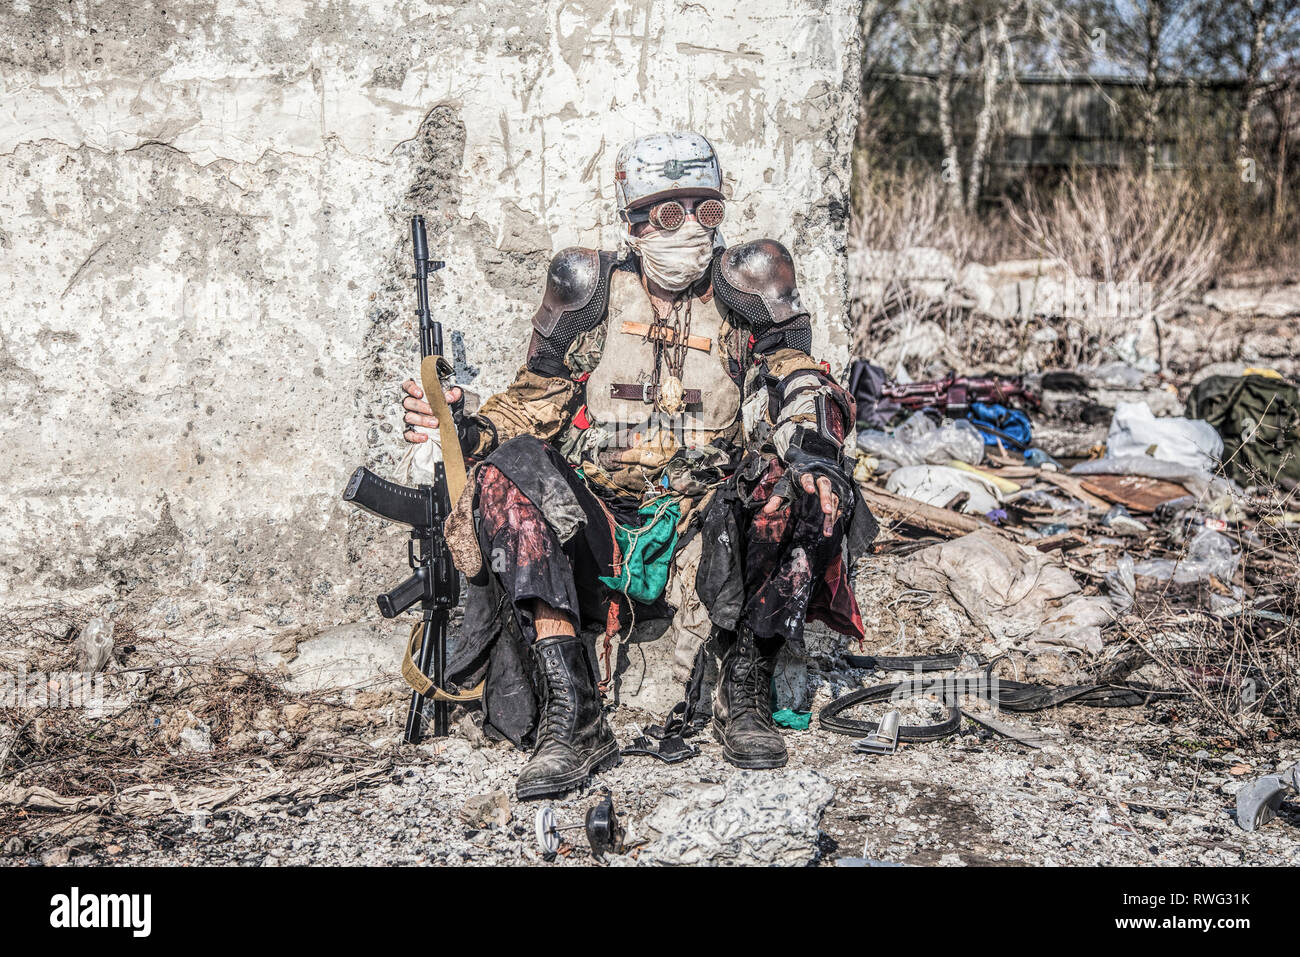 Post apocalyptic survivor creature with homemade weapons. - Stock Image